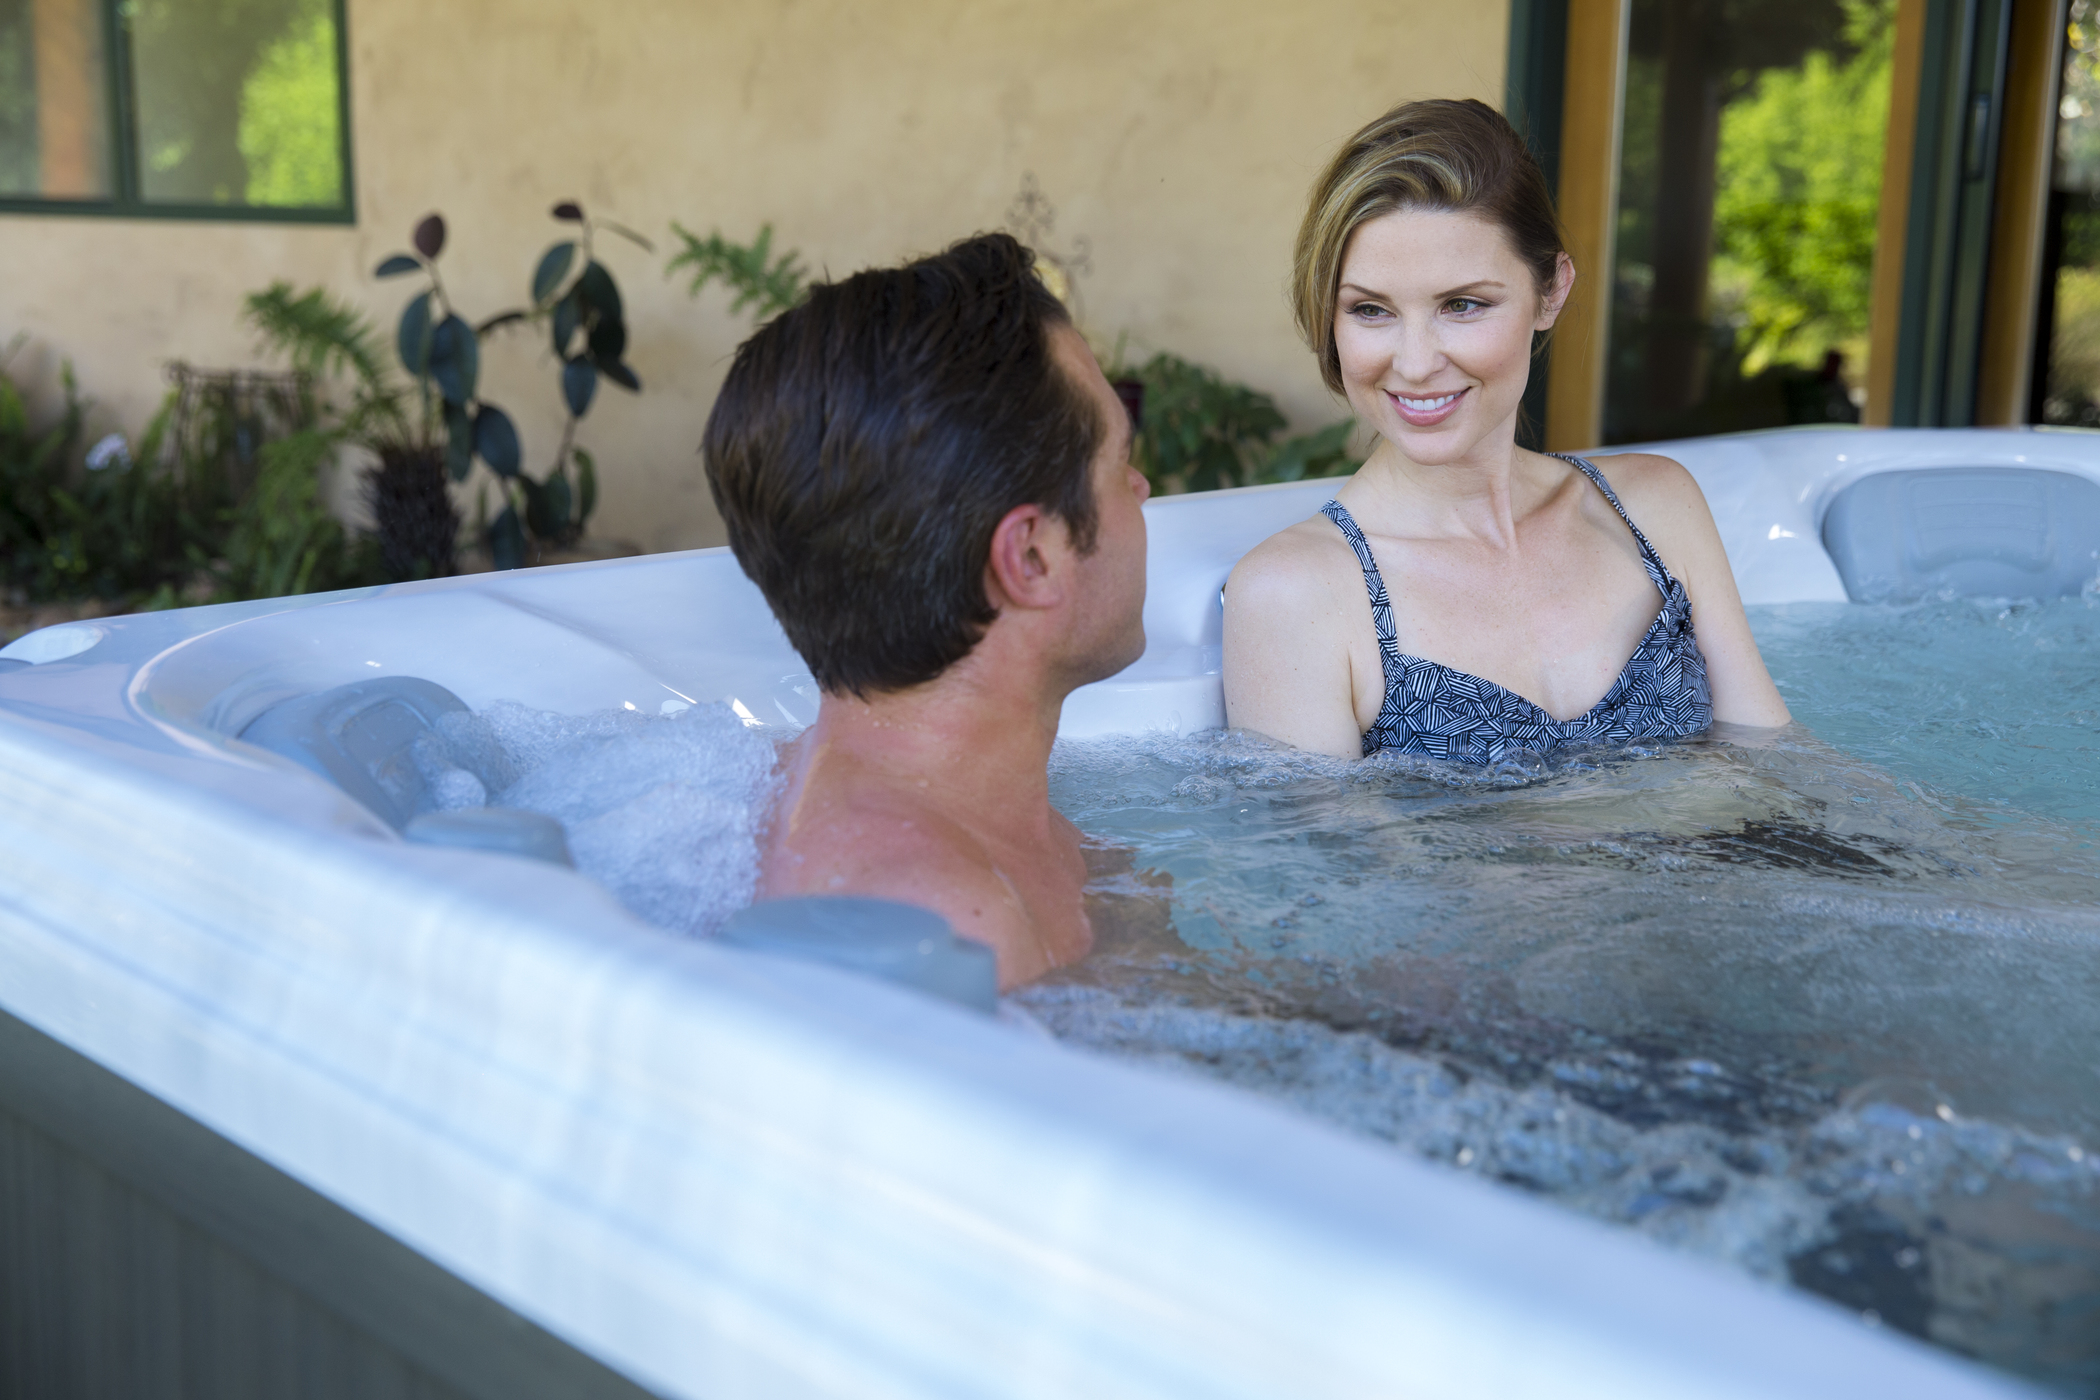 Man and woman relaxing in a hot tub.